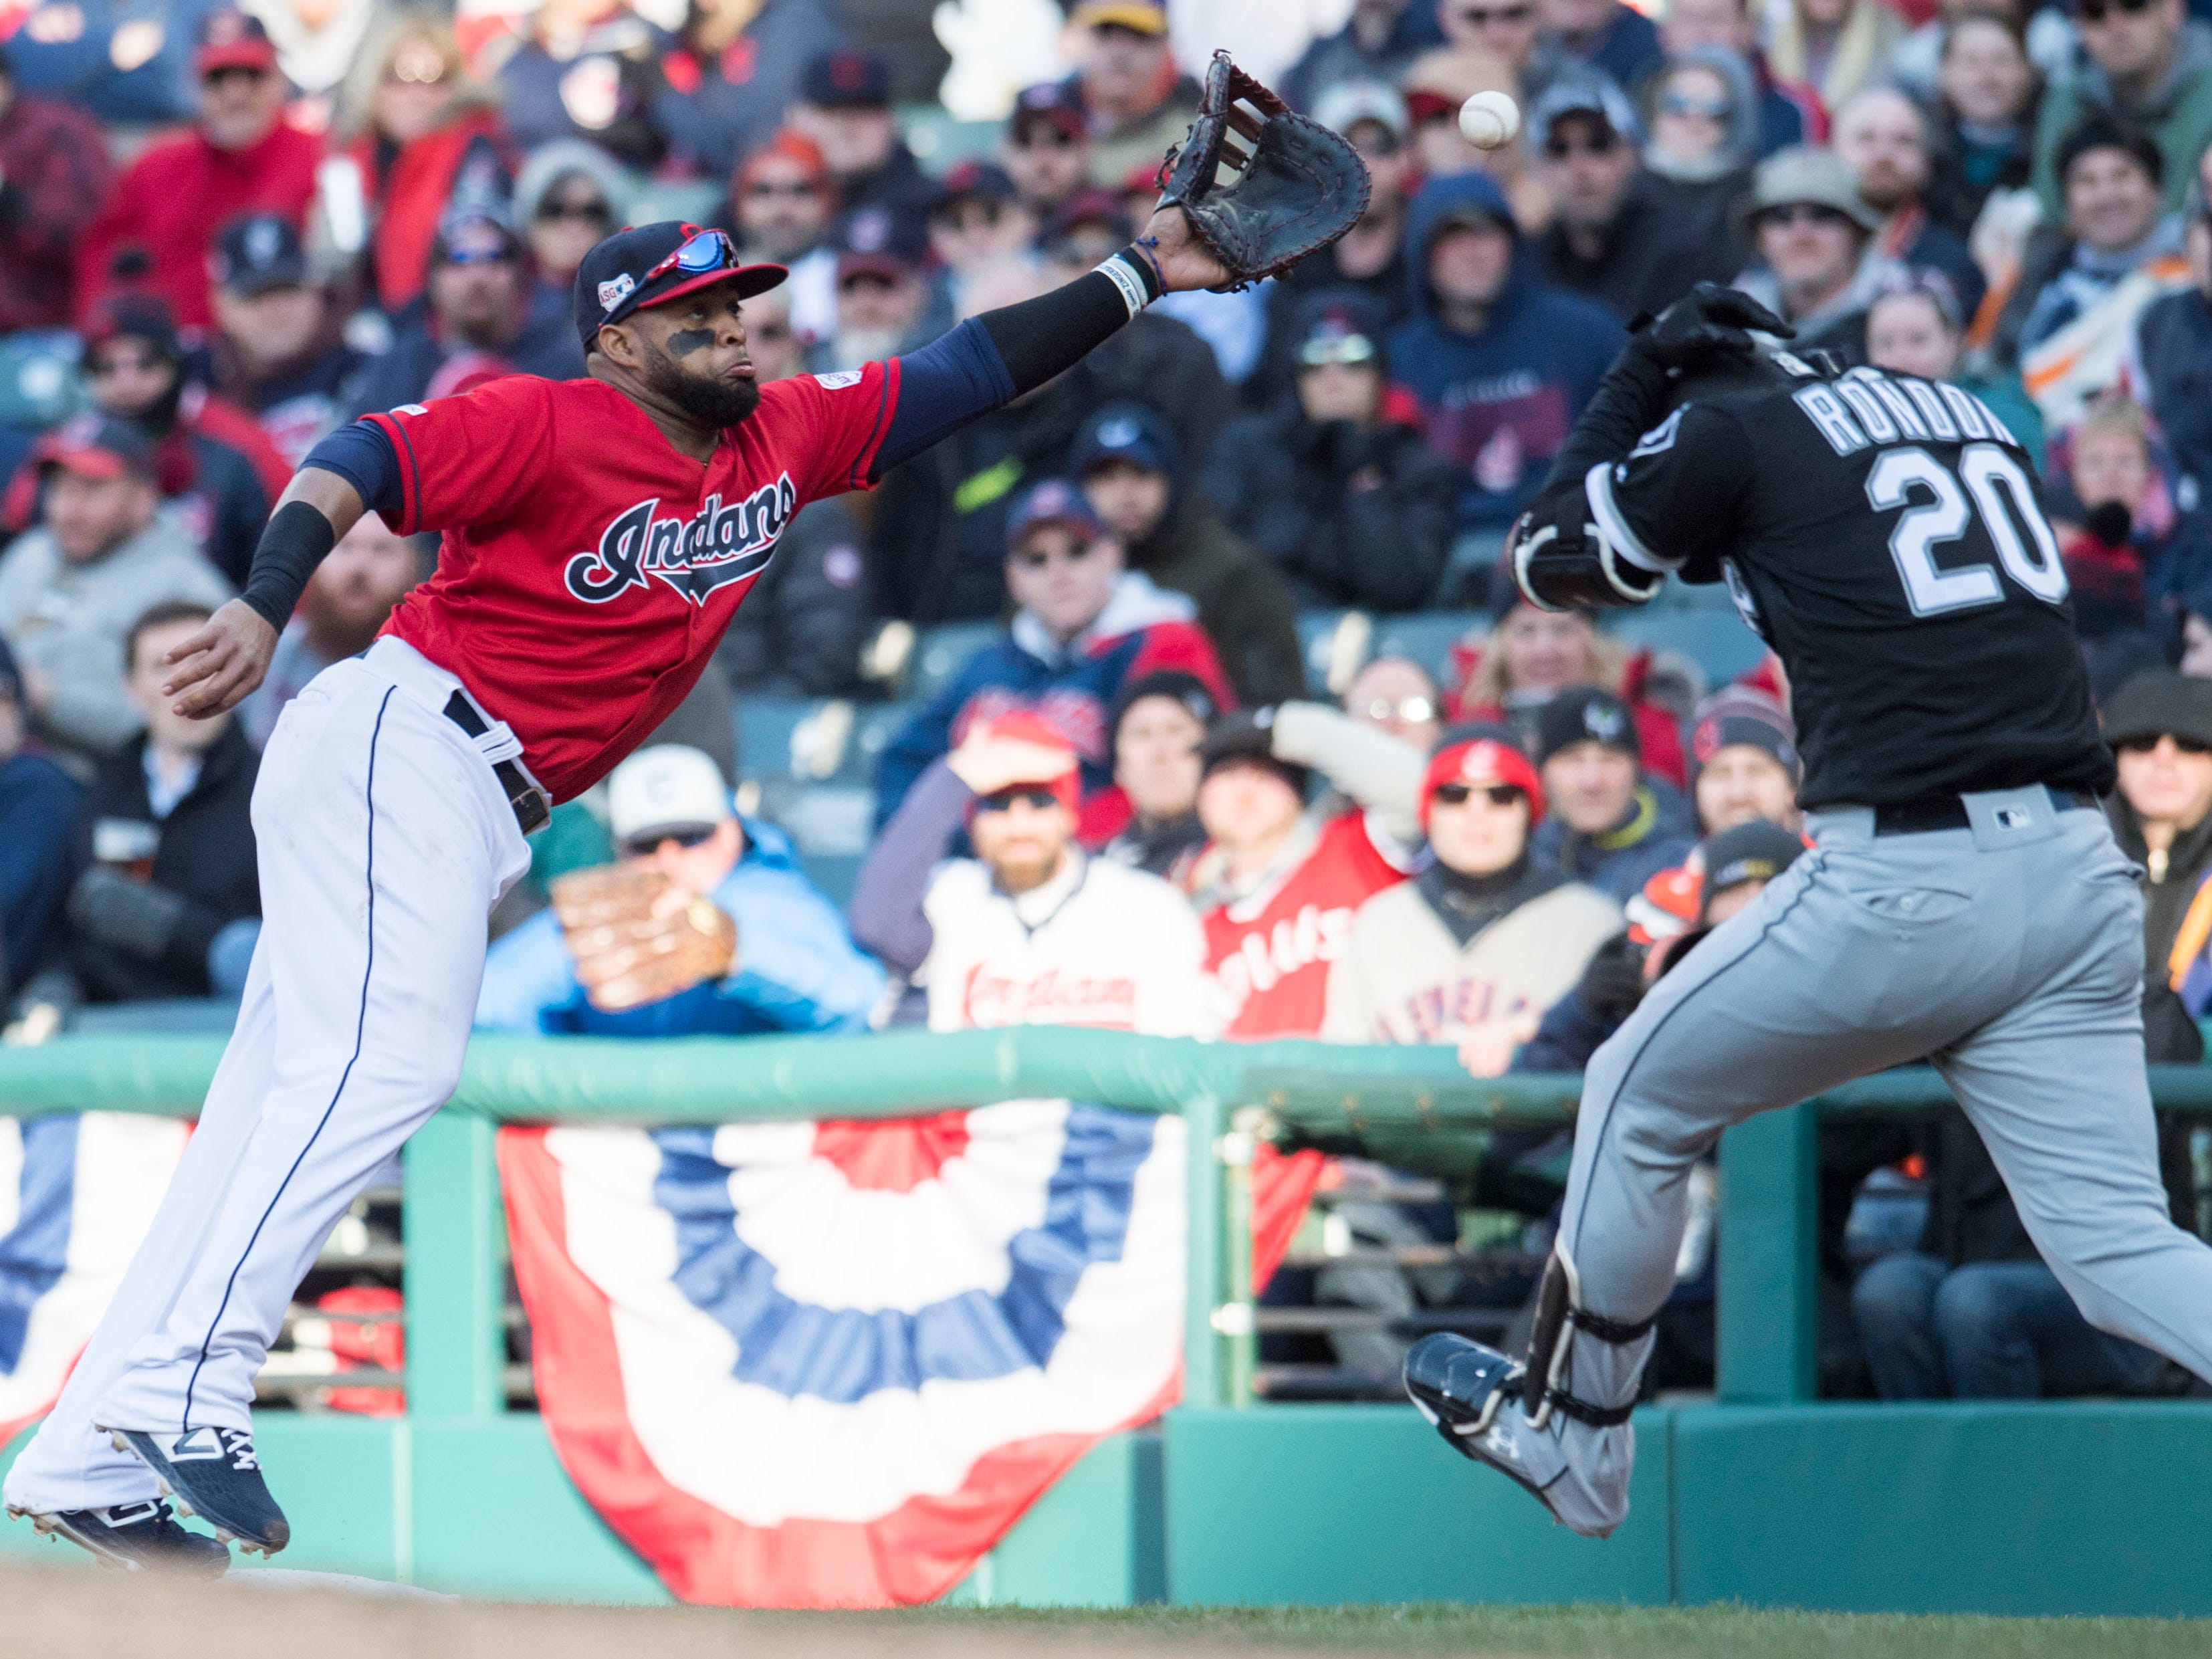 April 1: The Chicago White Sox's  Jose Rondon is safe as Cleveland Indians first baseman Carlos Santana leaps for an errant throw from relief pitcher Adam Cimber during the eighth inning at Progressive Field. The Indians won the game, 5-3.